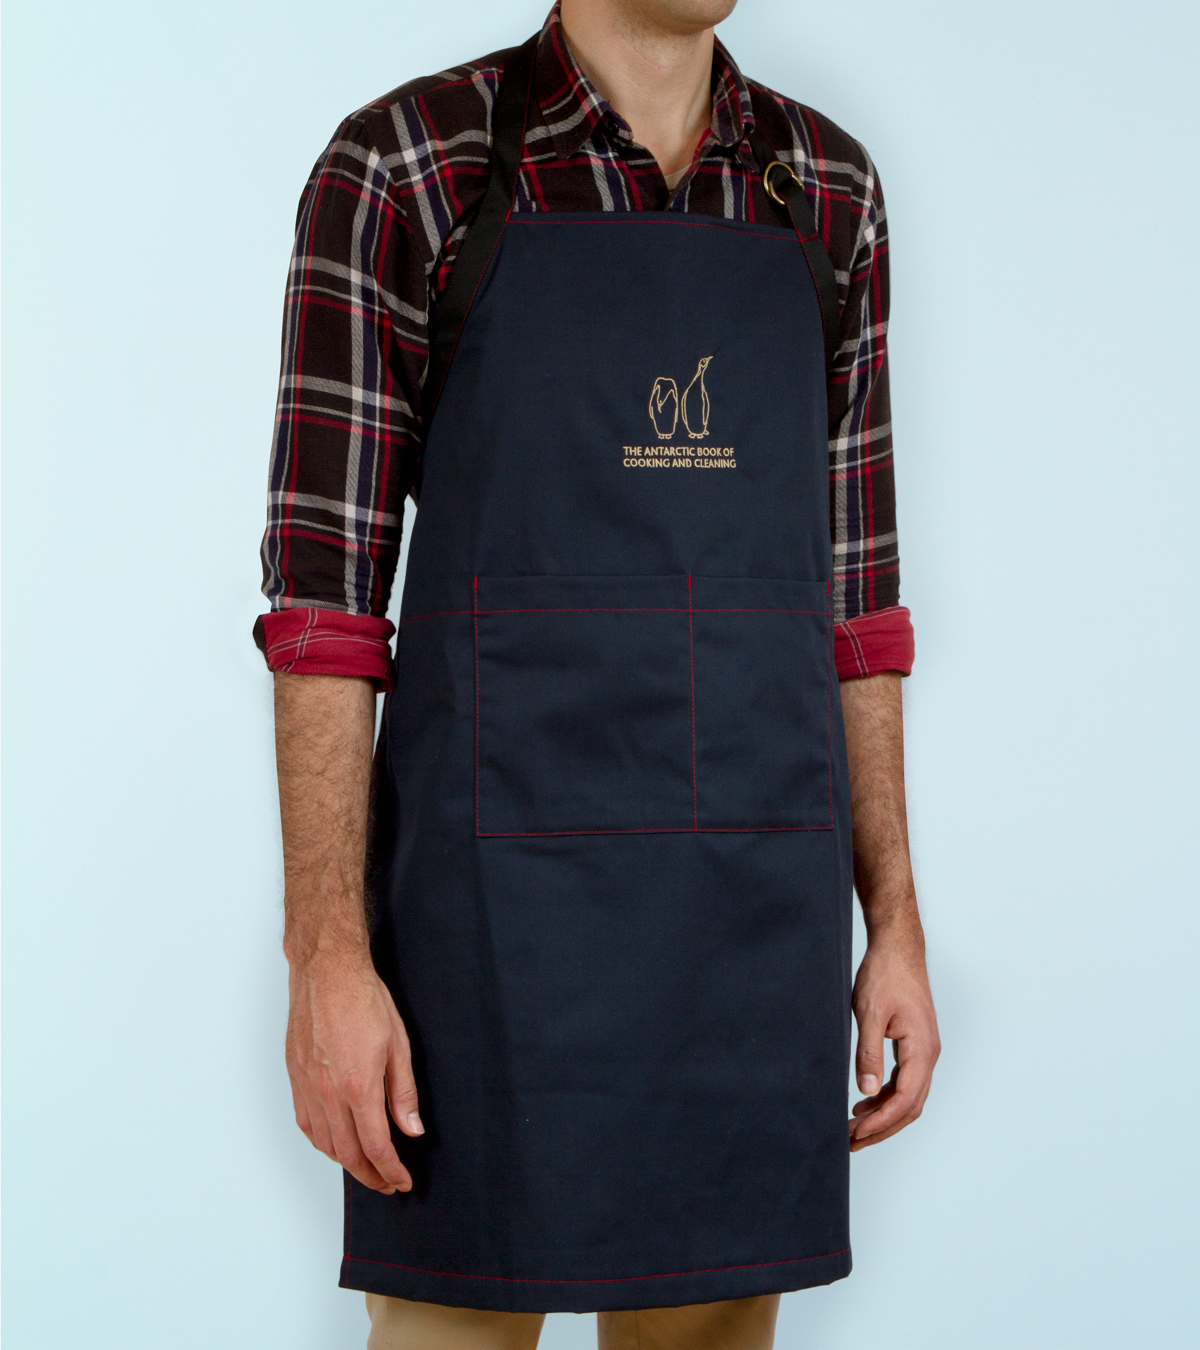 isabelfoo-ABCC-apron-02